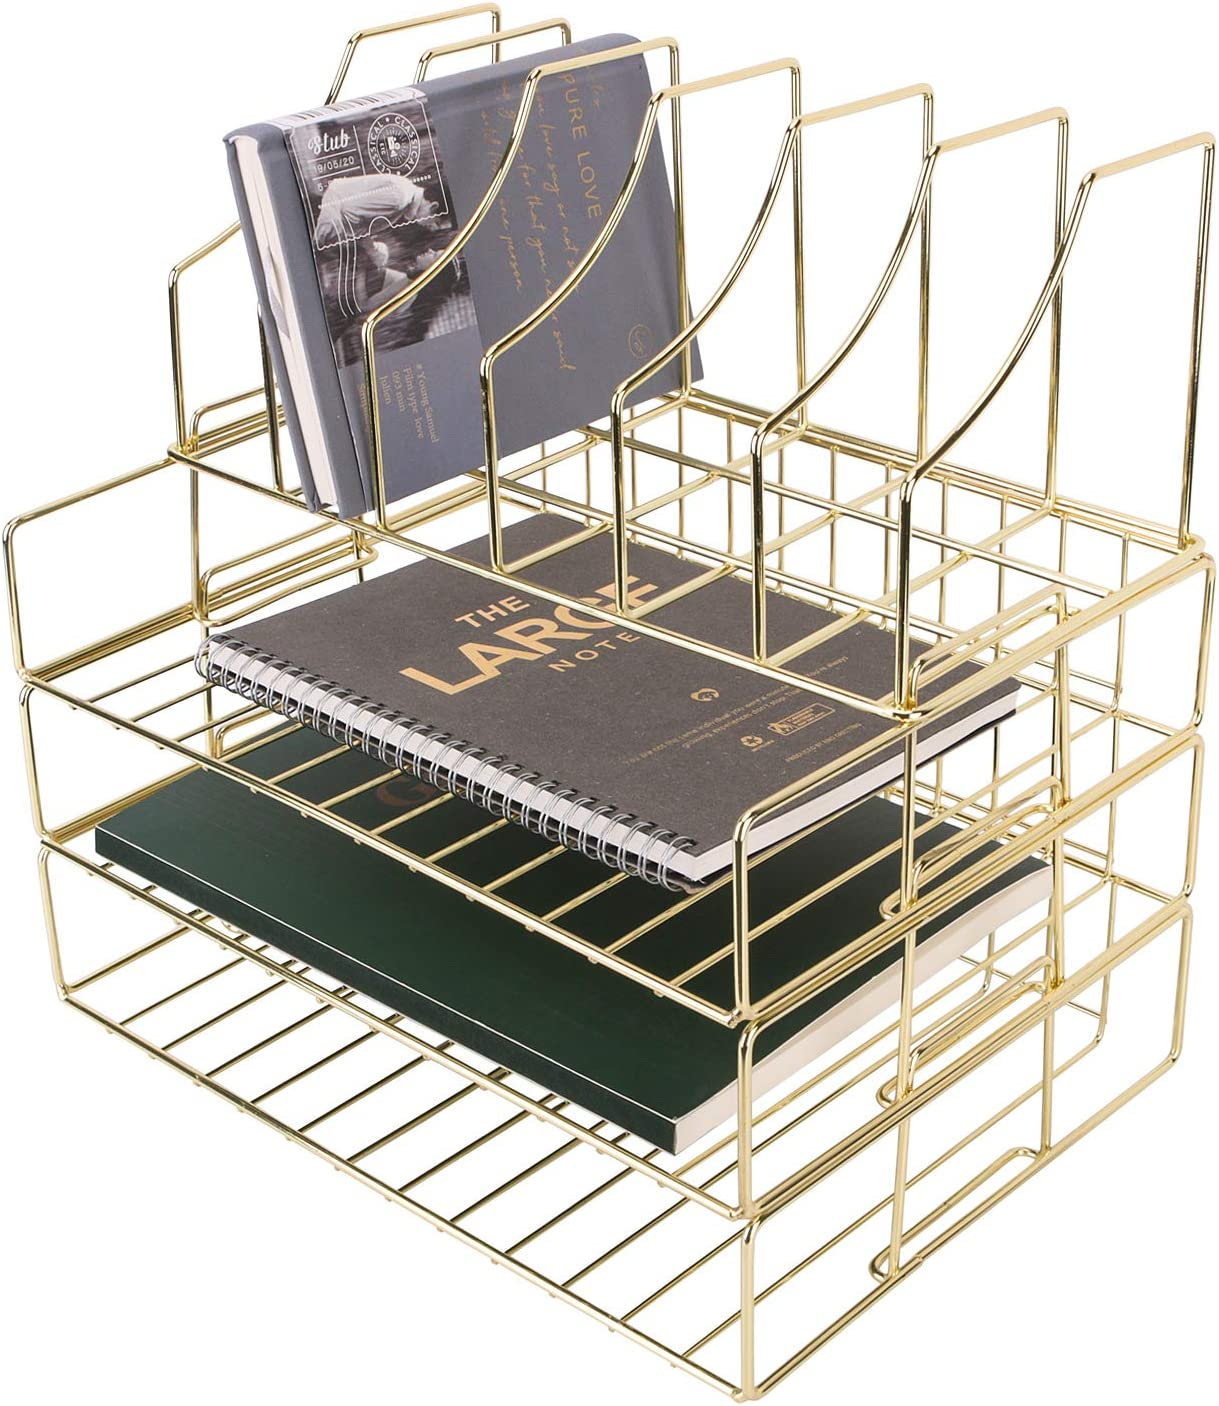 Hosaken Paper Tray, 3-Tier Stackable File Trays Plus Magazine Holder, Wire Desk Organizer Document Sorter Shelf for Home and Office Supplies, Gold